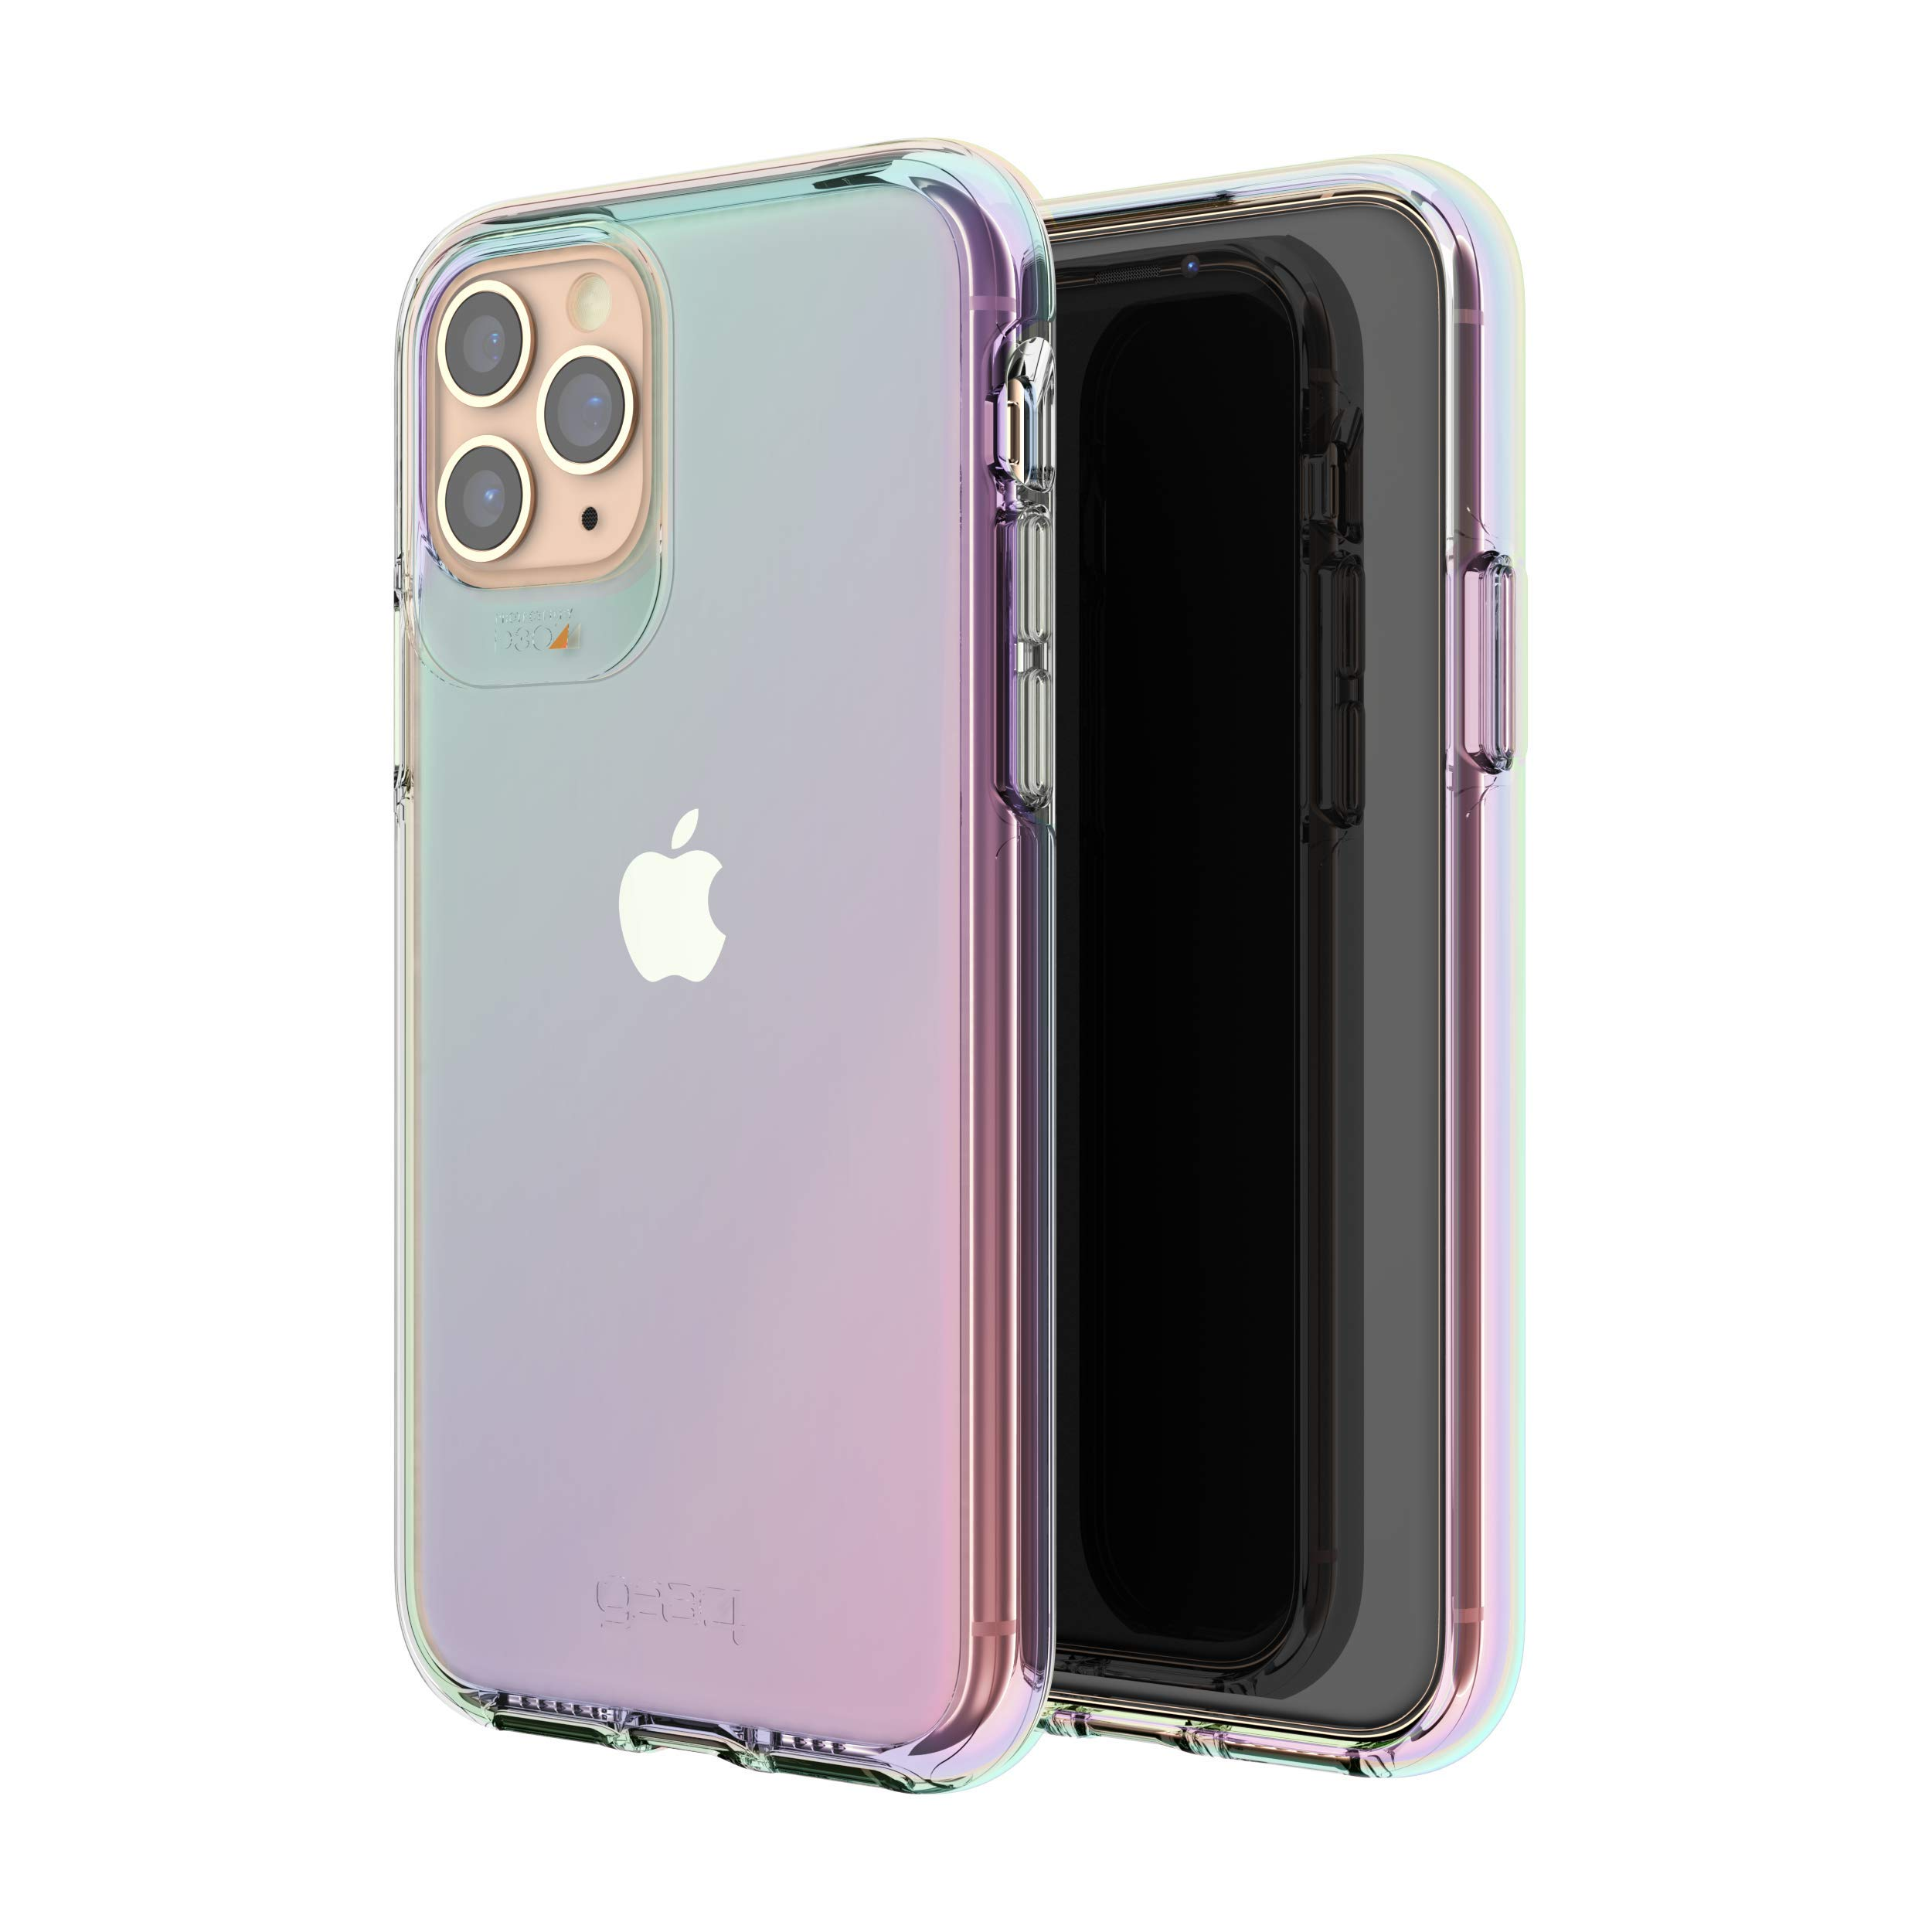 Gear4 Crystal Palace Iridescent Compatible with iPhone 11 Pro Case, Advanced Impact Protection with Integrated D3O Technology, Anti-Yellowing, Phone Cover – Iridescent